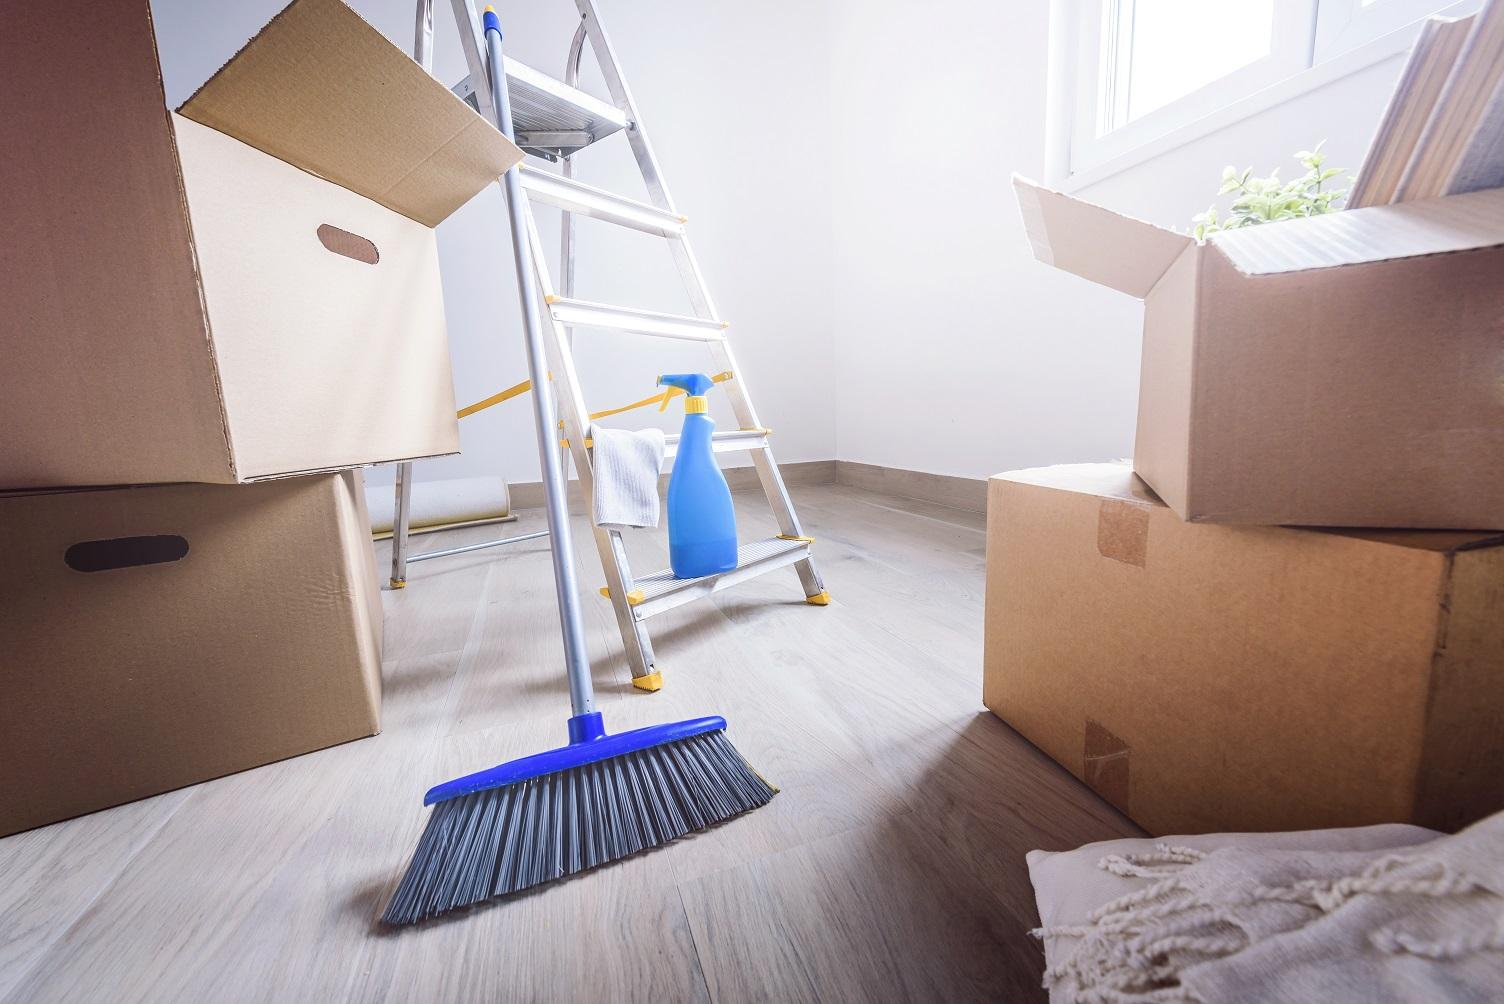 Apartment Cleaning in Vancouver WA by First Choice Janitorial